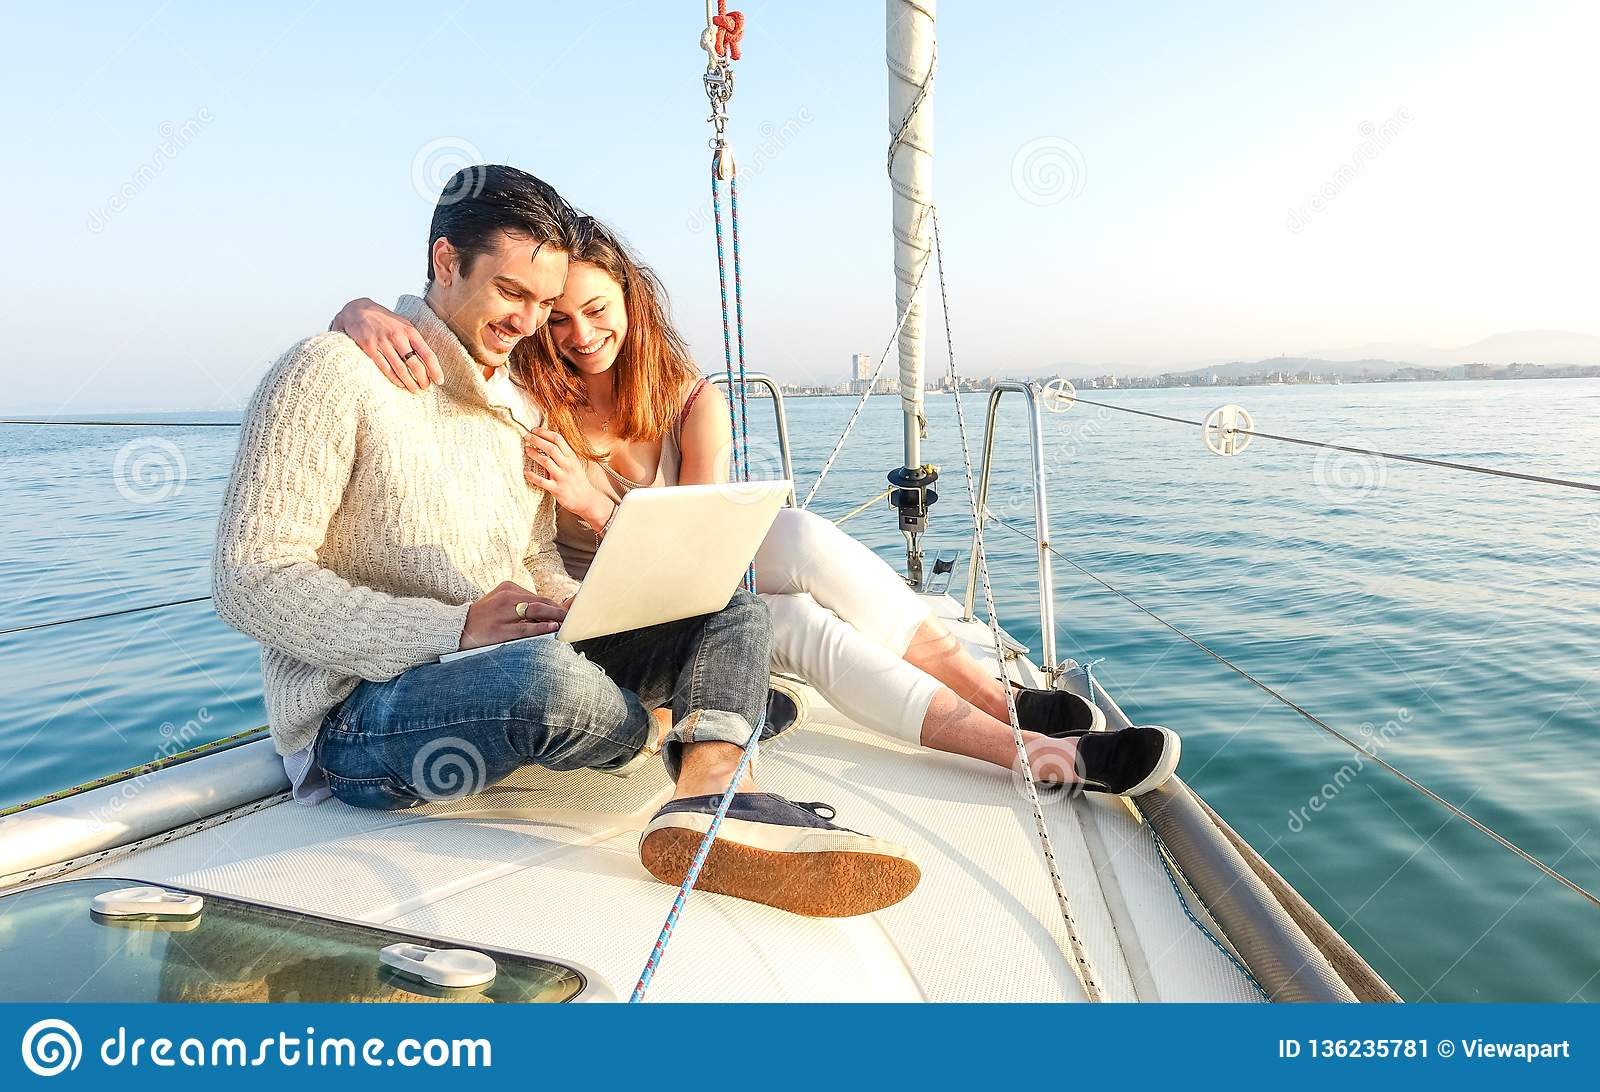 Young couple in love on sail boat having fun remote working at laptop- Happy luxury lifestyle on yacht sailboat